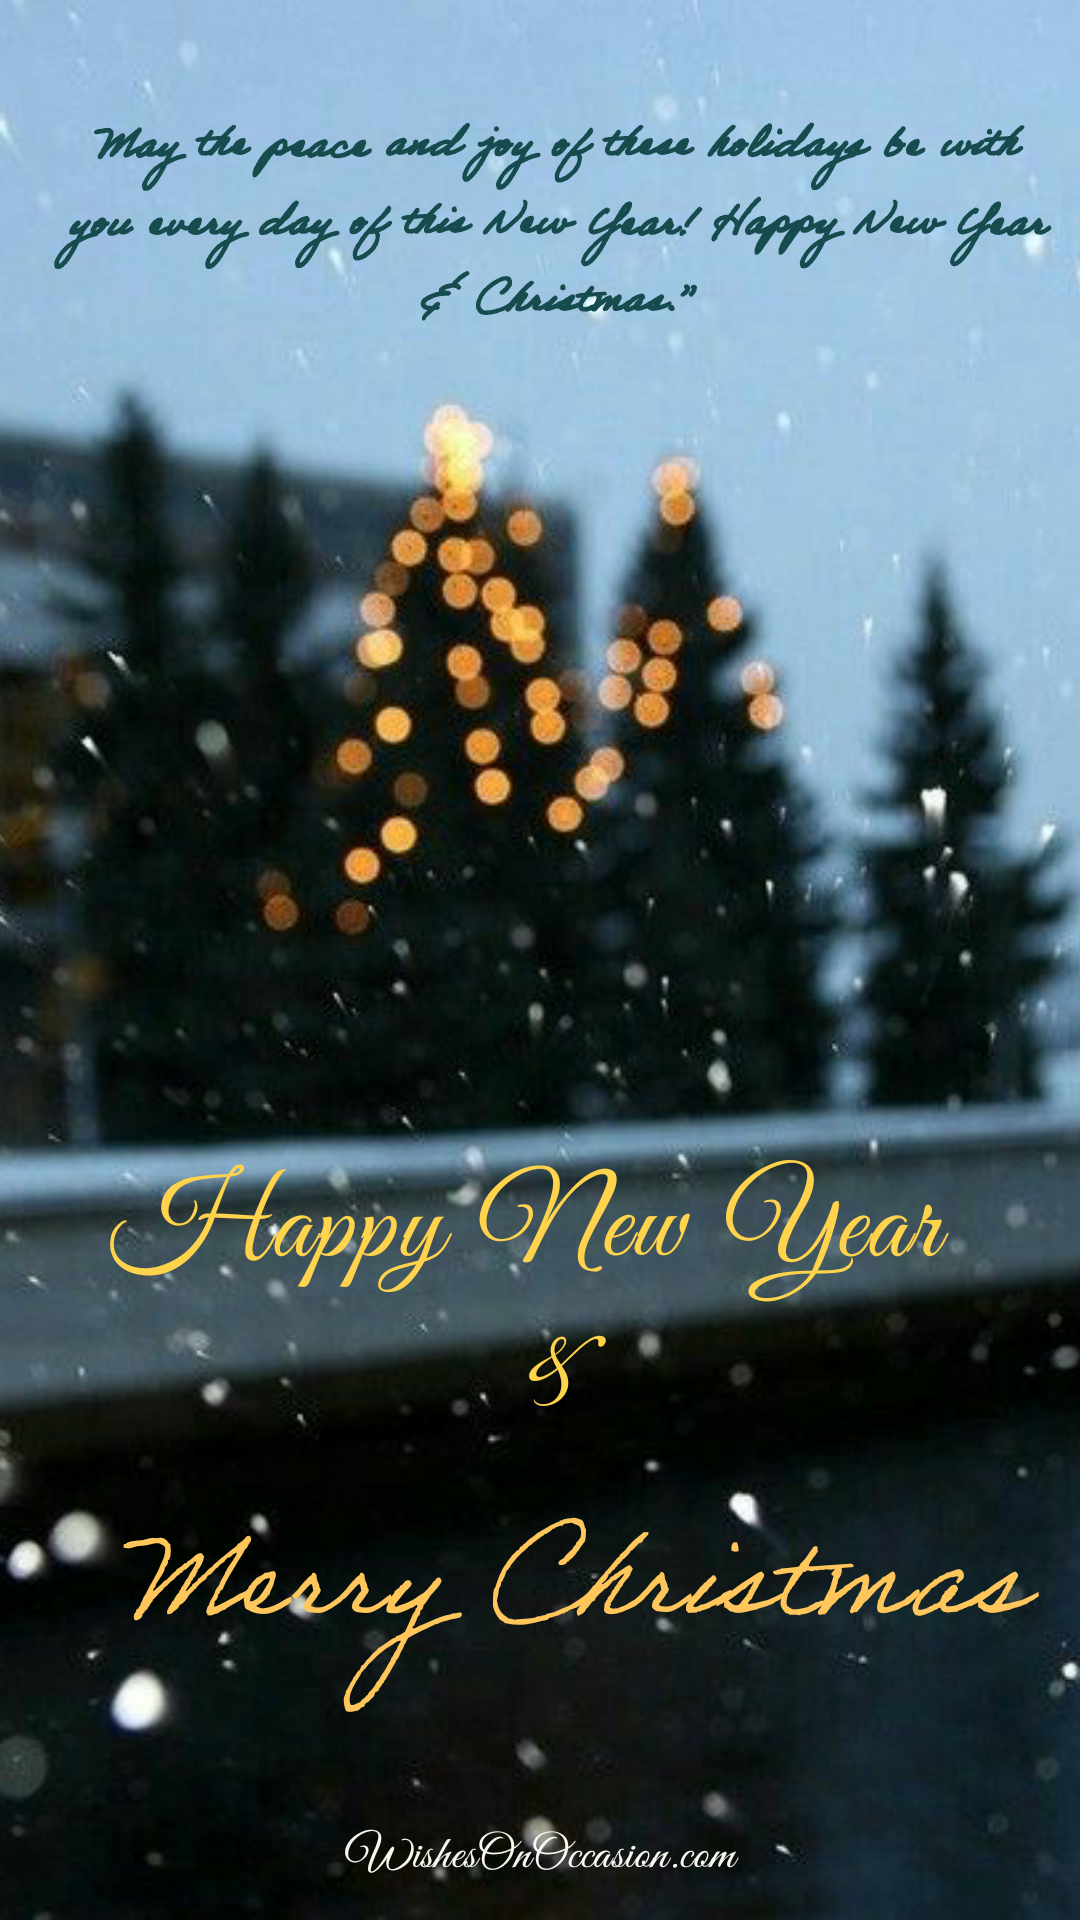 Every Day Is Christmas 2021 100 Unique Happy New Year Quotes For 2021 Happy New Year Quotes Quotes About New Year New Year Wishes Quotes